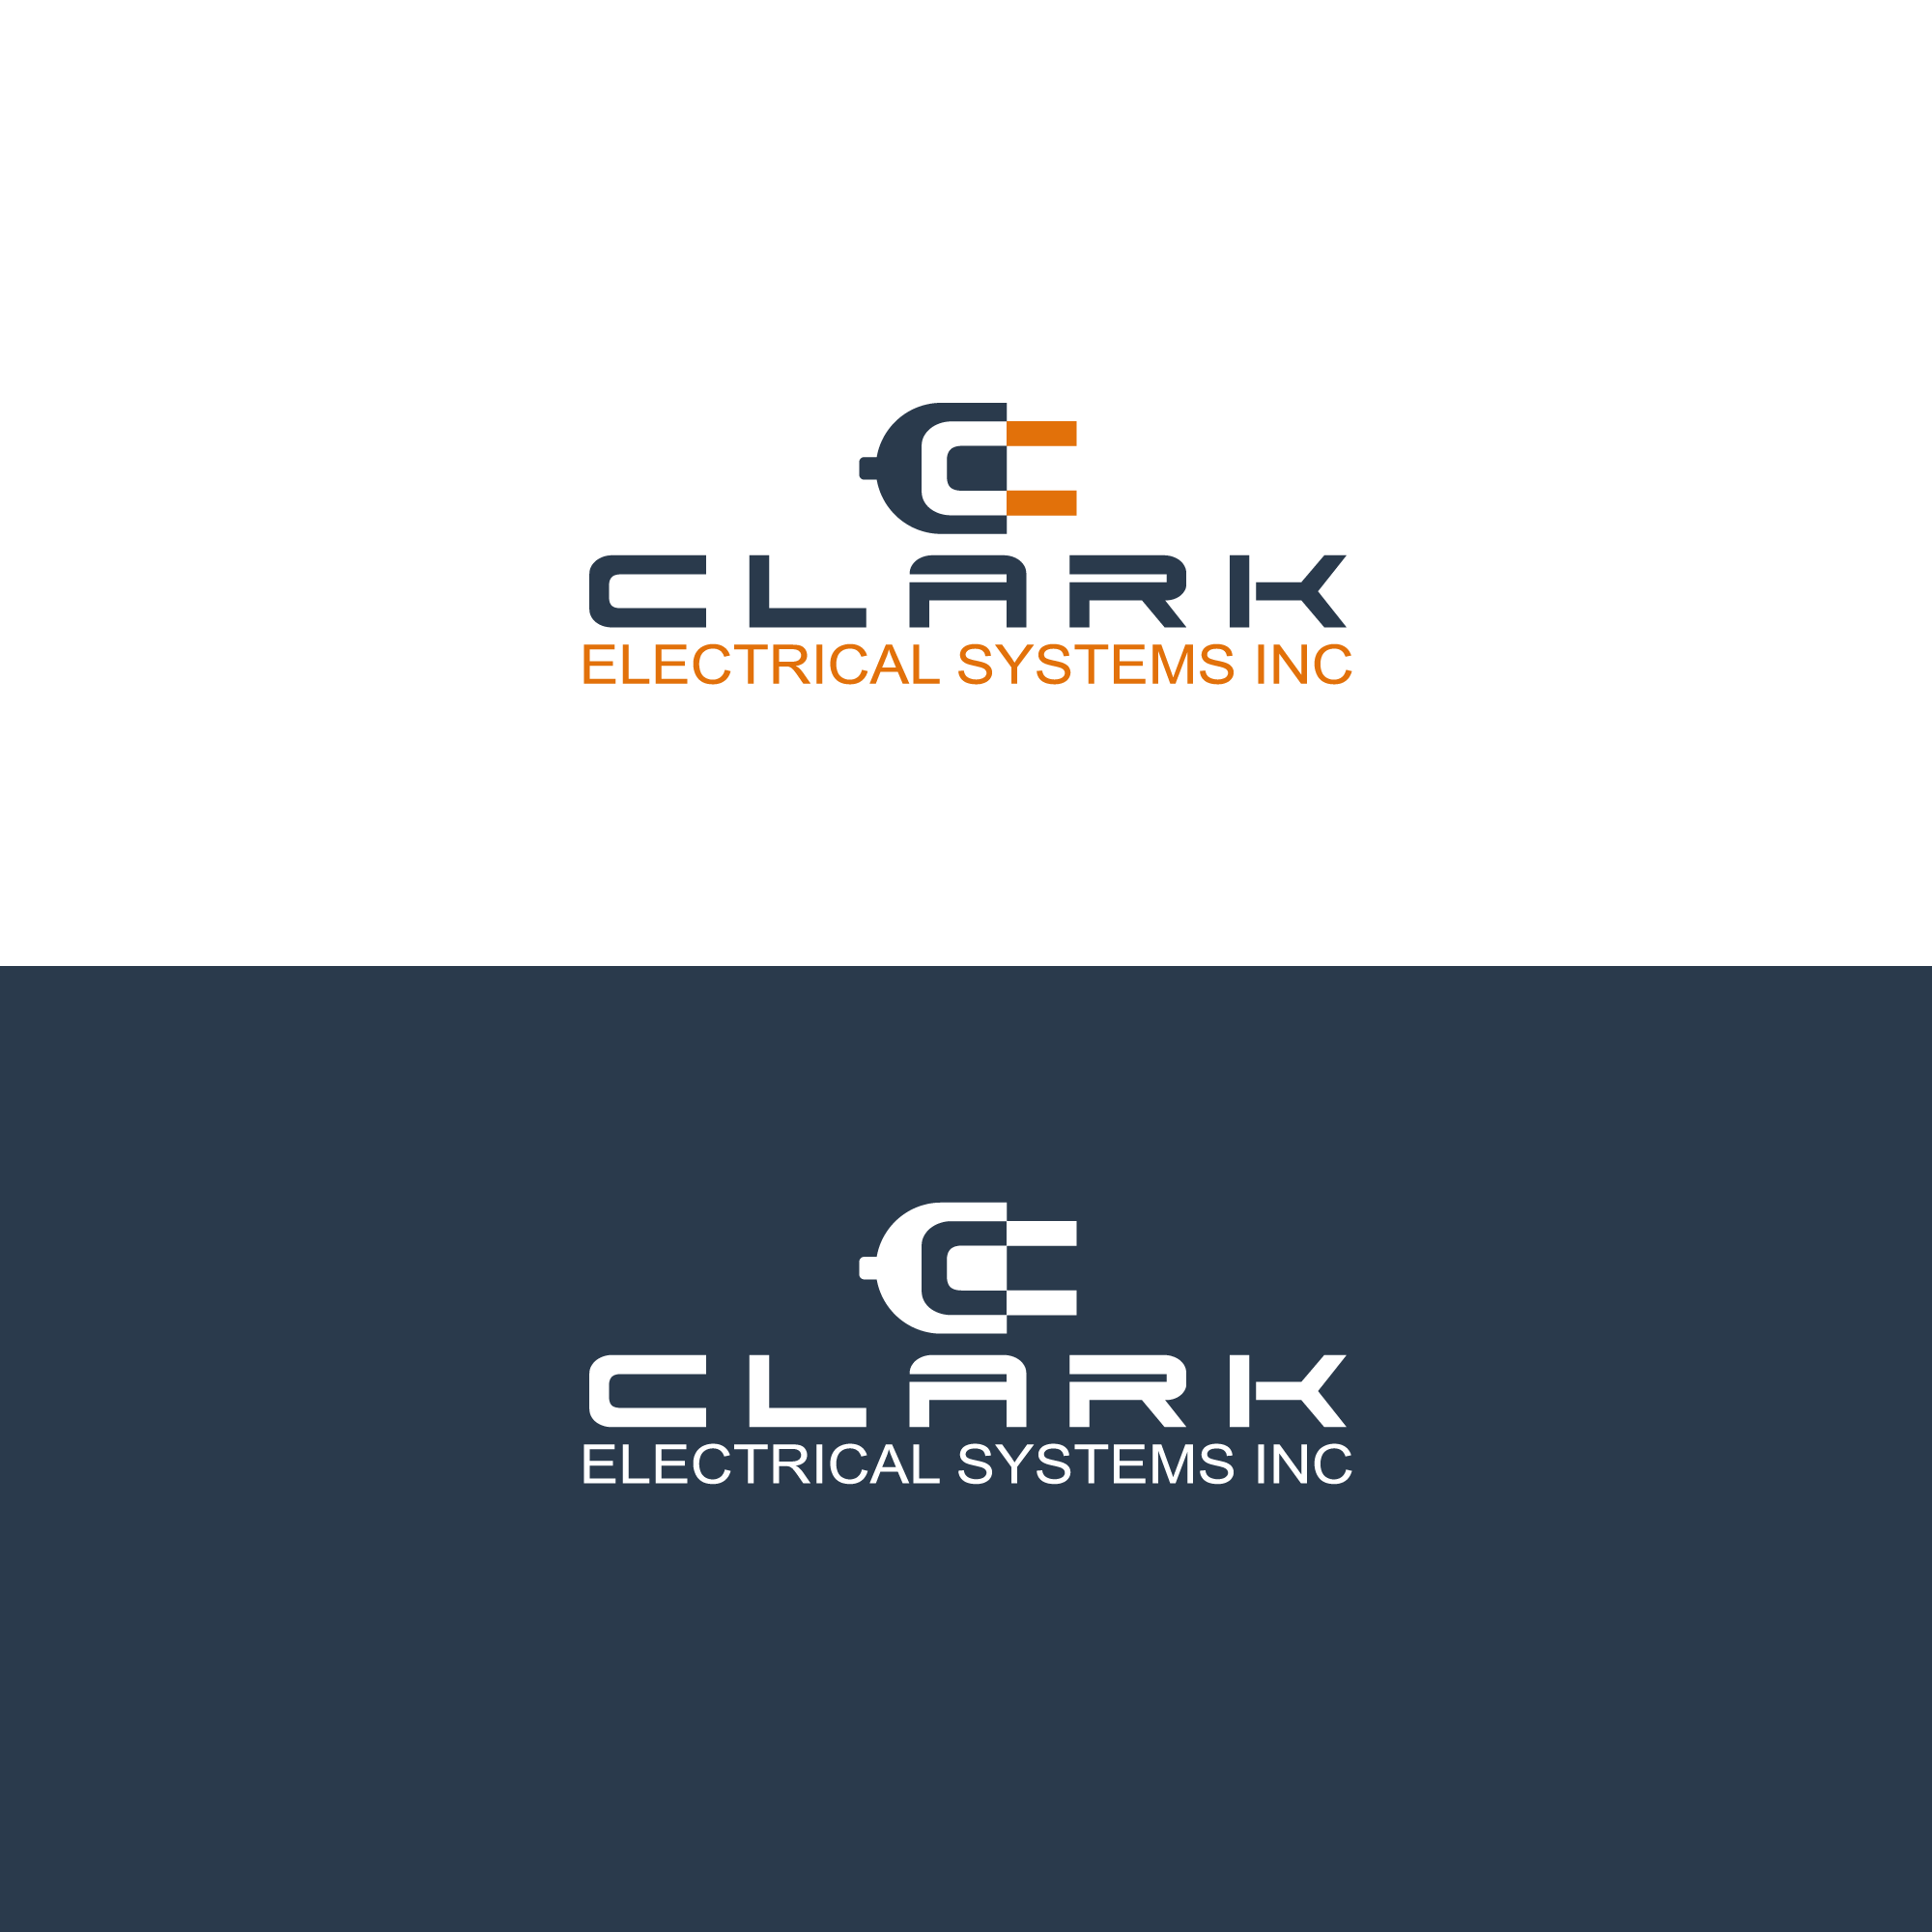 Logo Design by Runz - Entry No. 222 in the Logo Design Contest Artistic Logo Design for Clark Electrical Systems Inc..